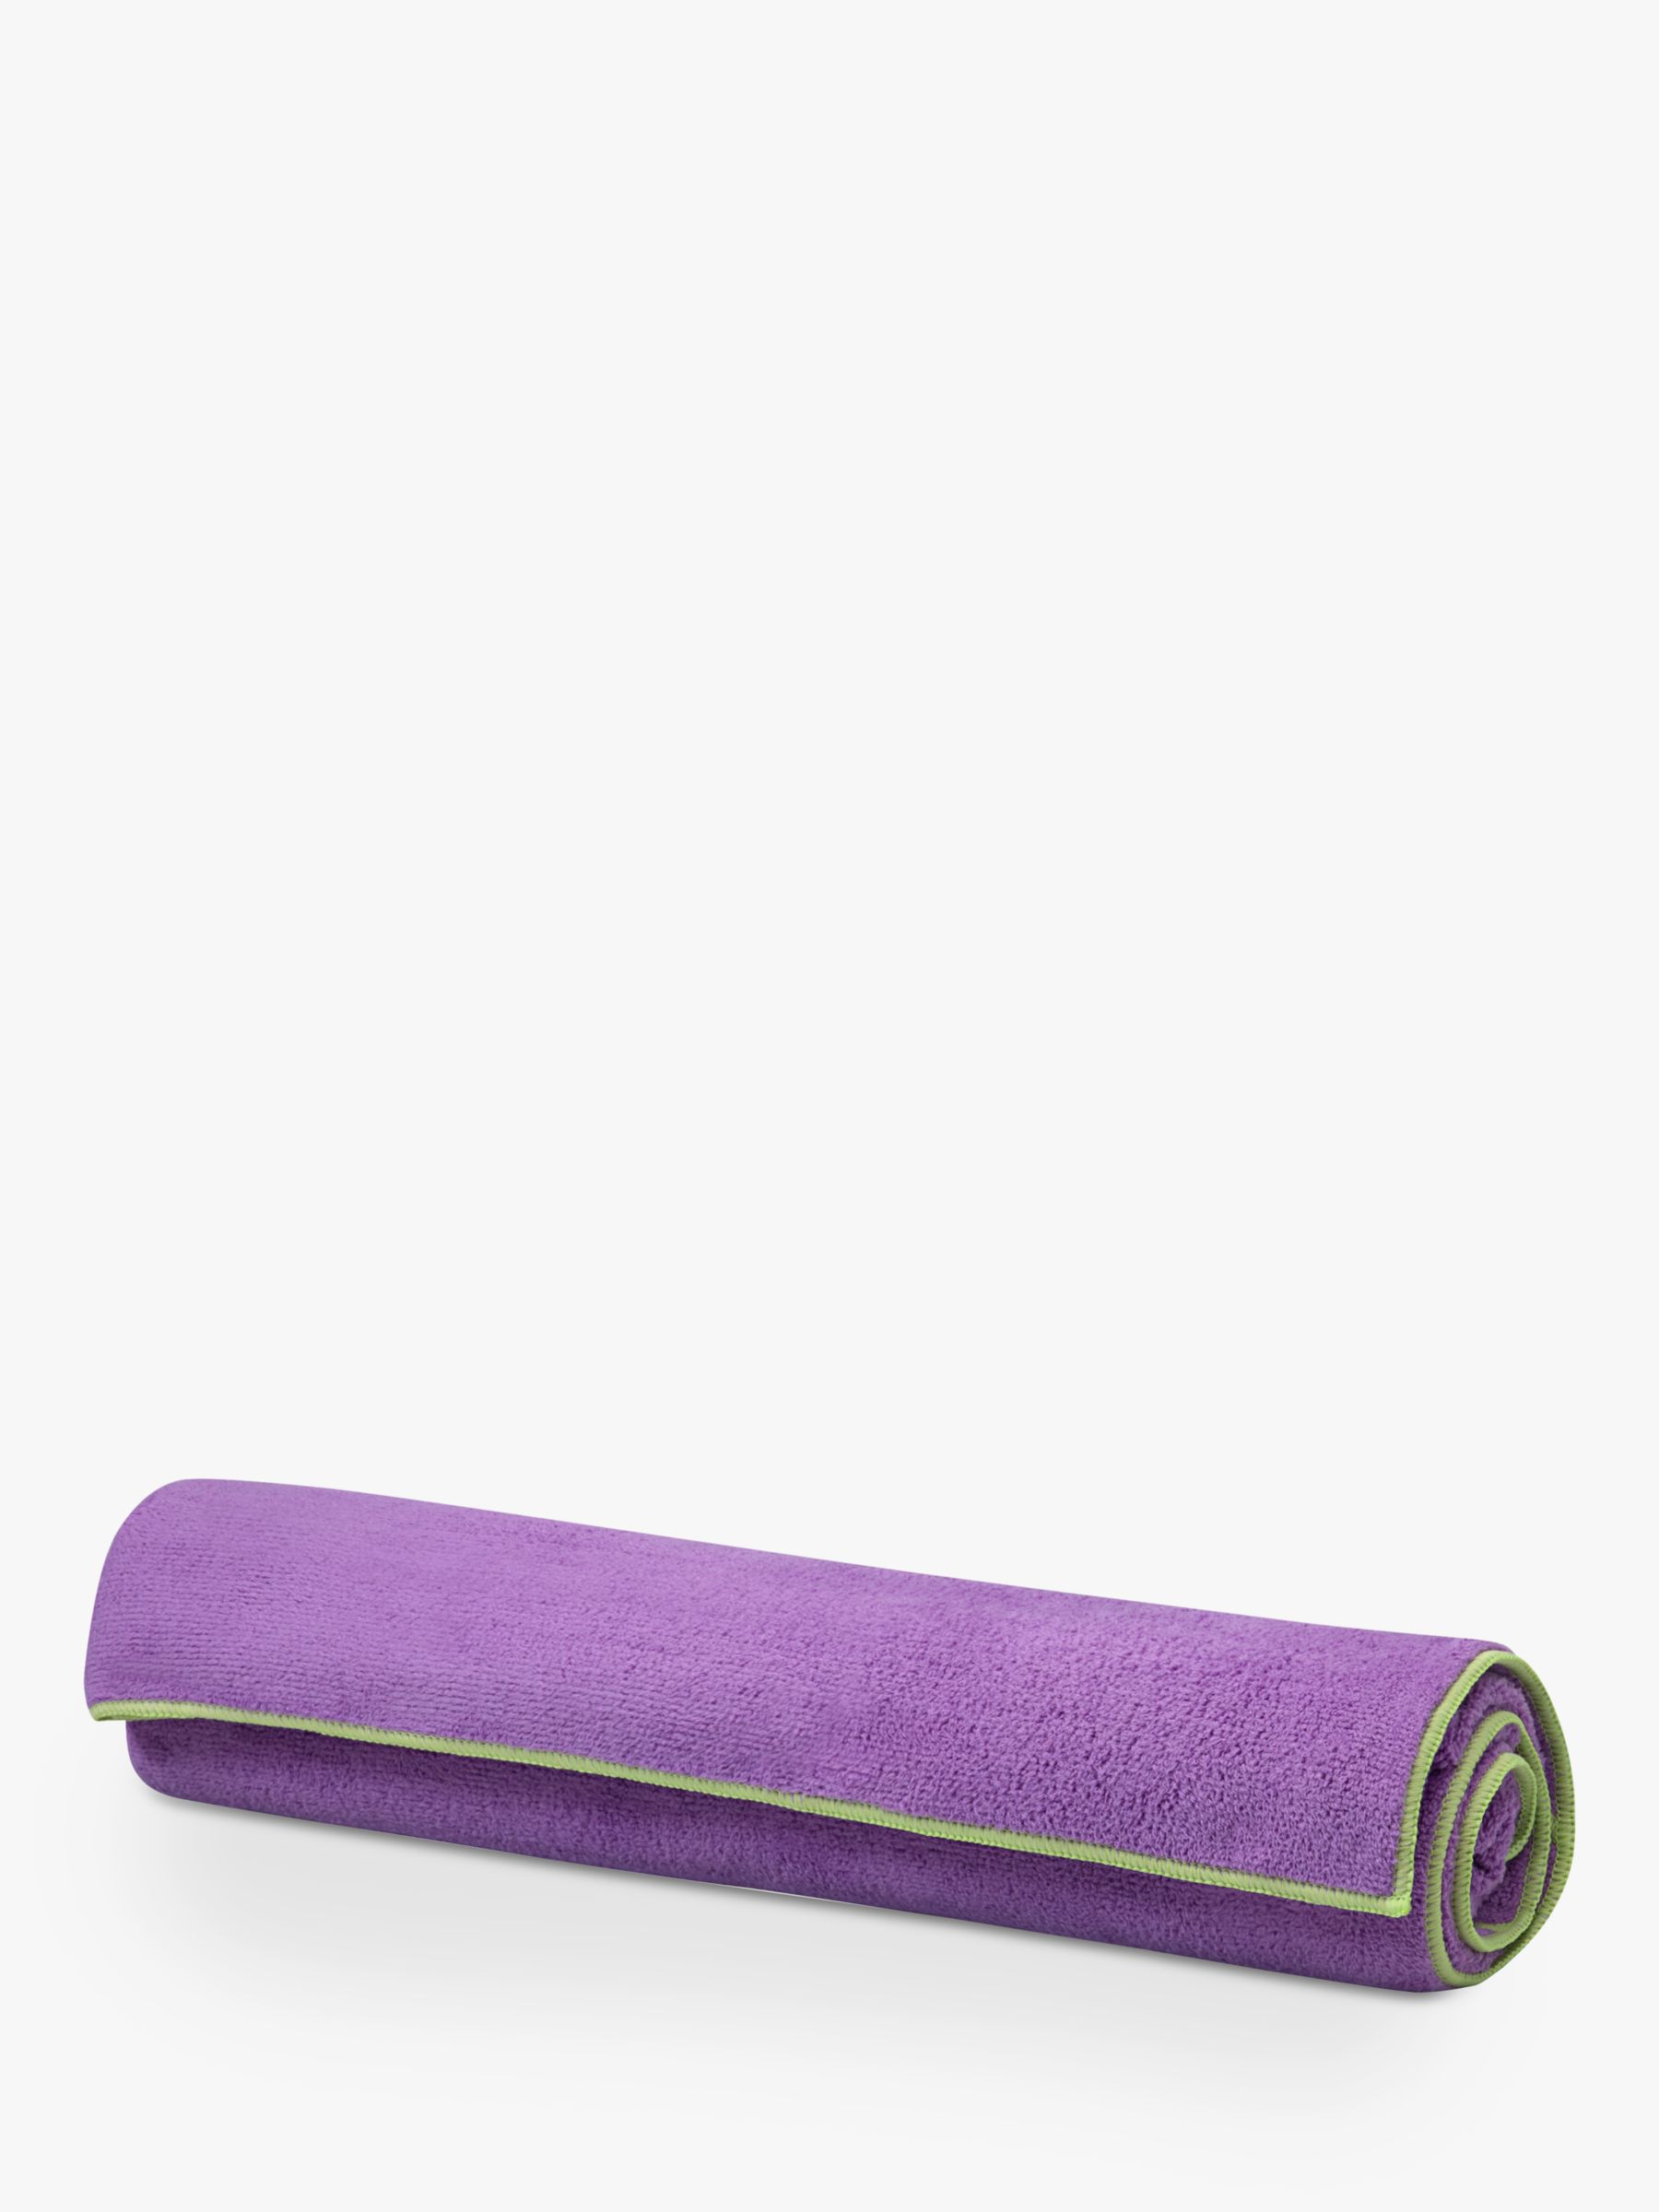 Gaiam Gaiam Stay-Put Yoga Mat, Purple